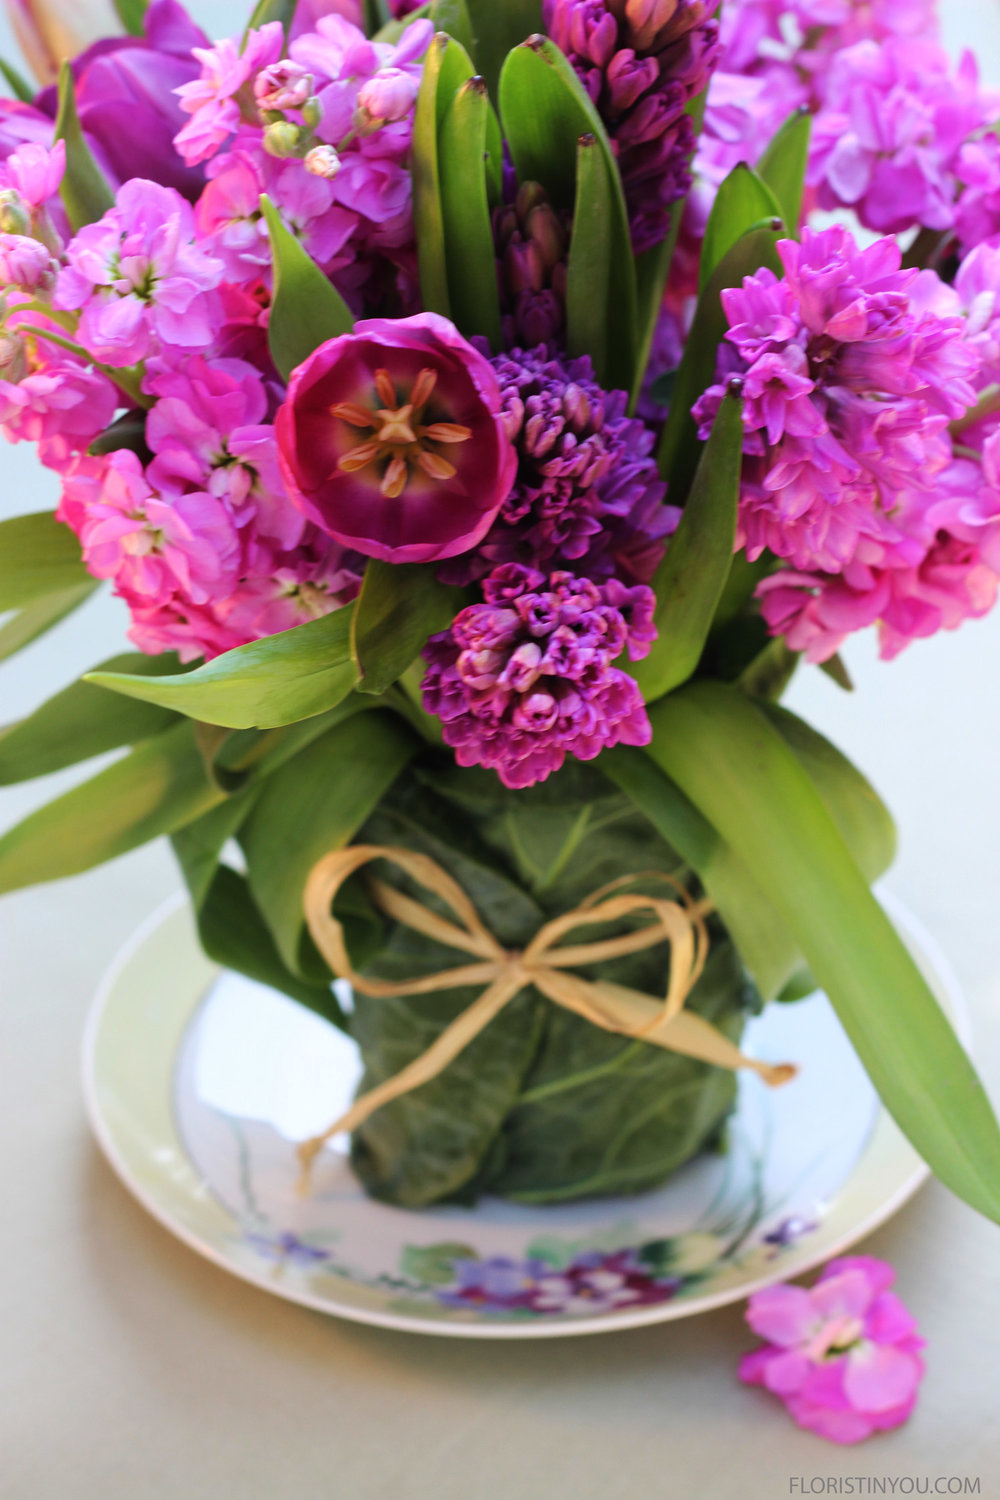 Arrangement sits on a vintage plate with a yellow rim &hand painted lavender flowers.